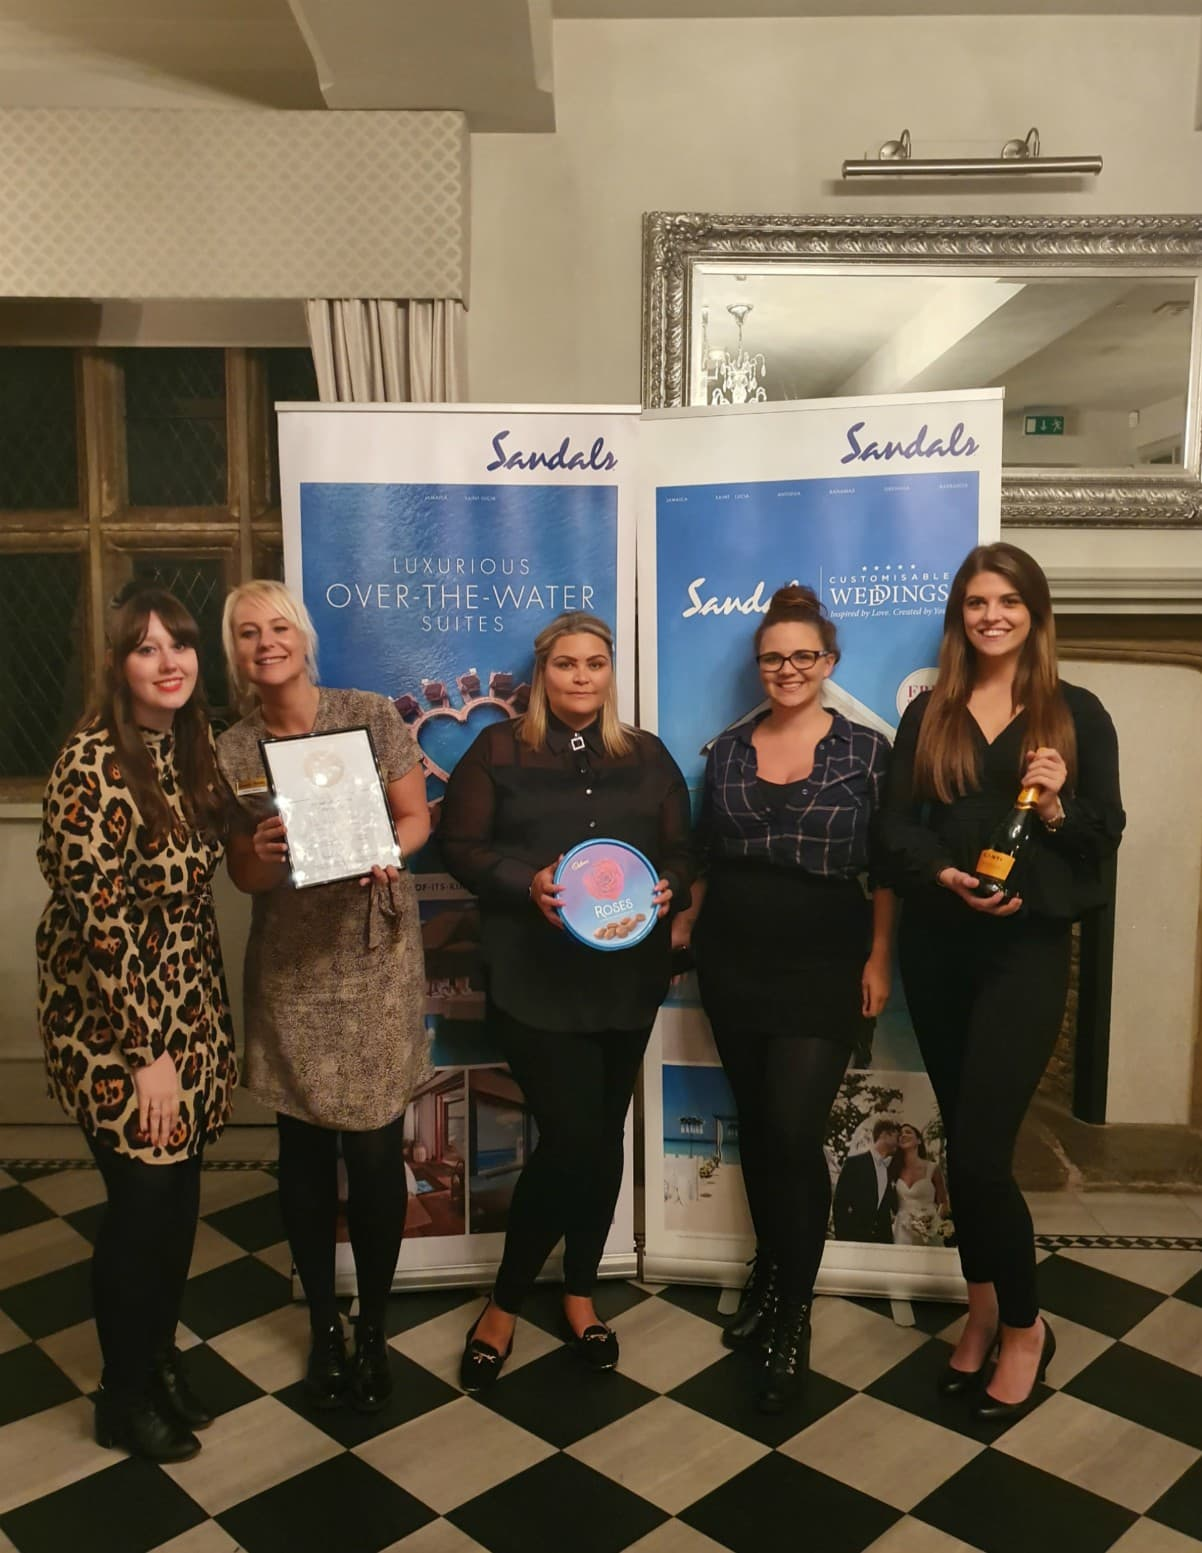 Sandals Outstanding Achievement Award 2019